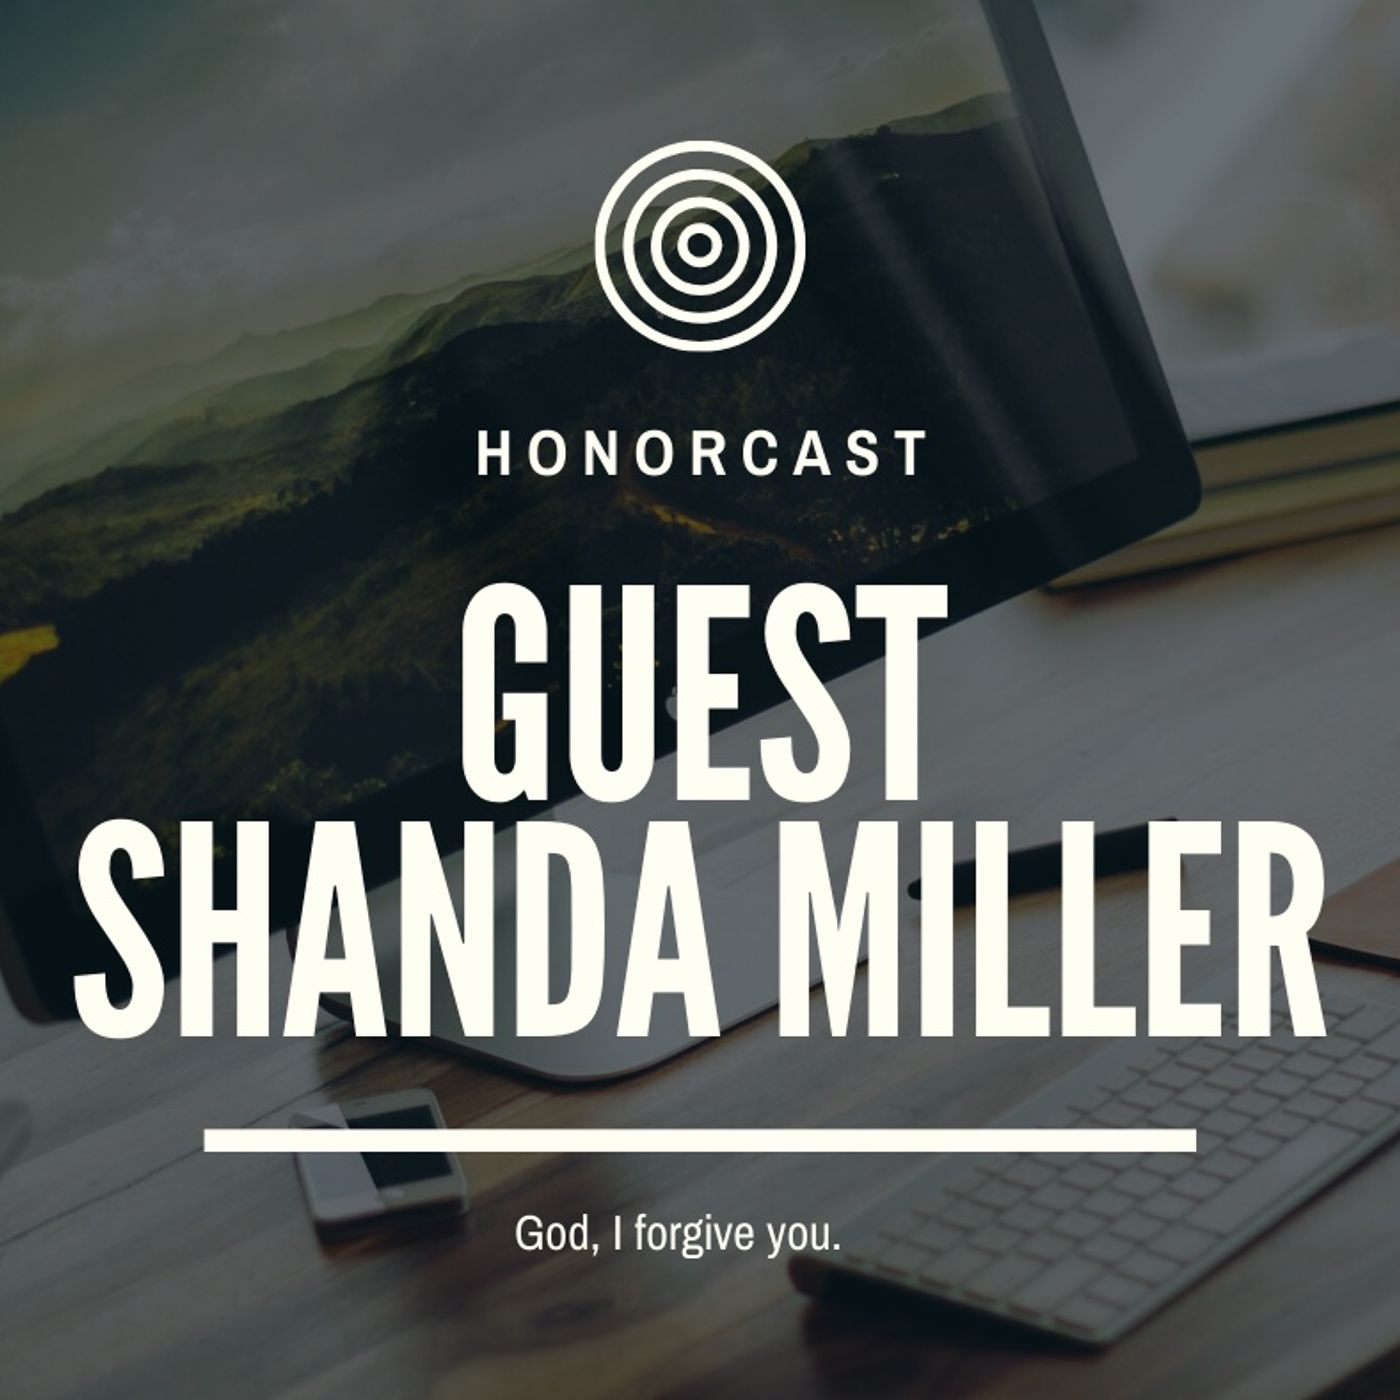 S1E1 Shanda Miller: Trauma, Pain, and Victory over them.